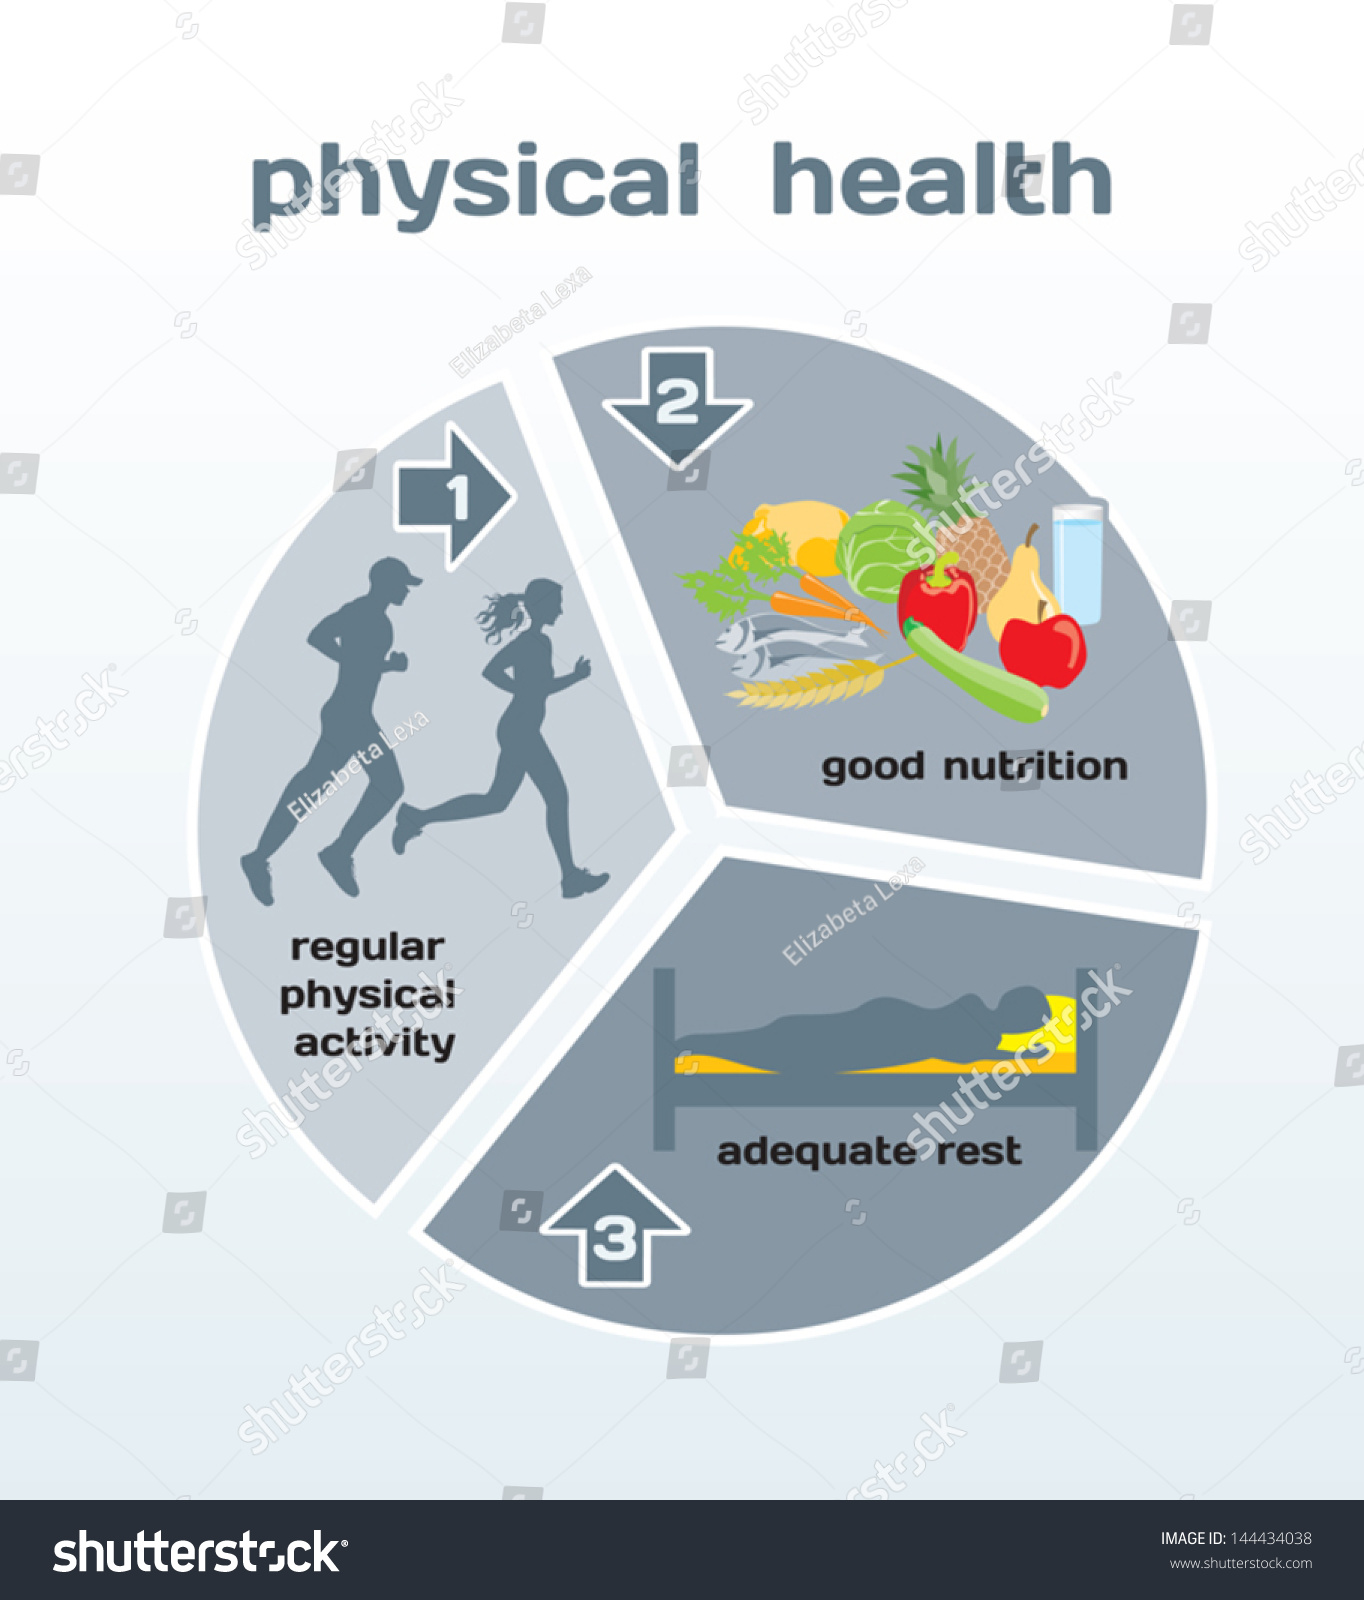 Essay About Nutrition In Health And Physical Activities